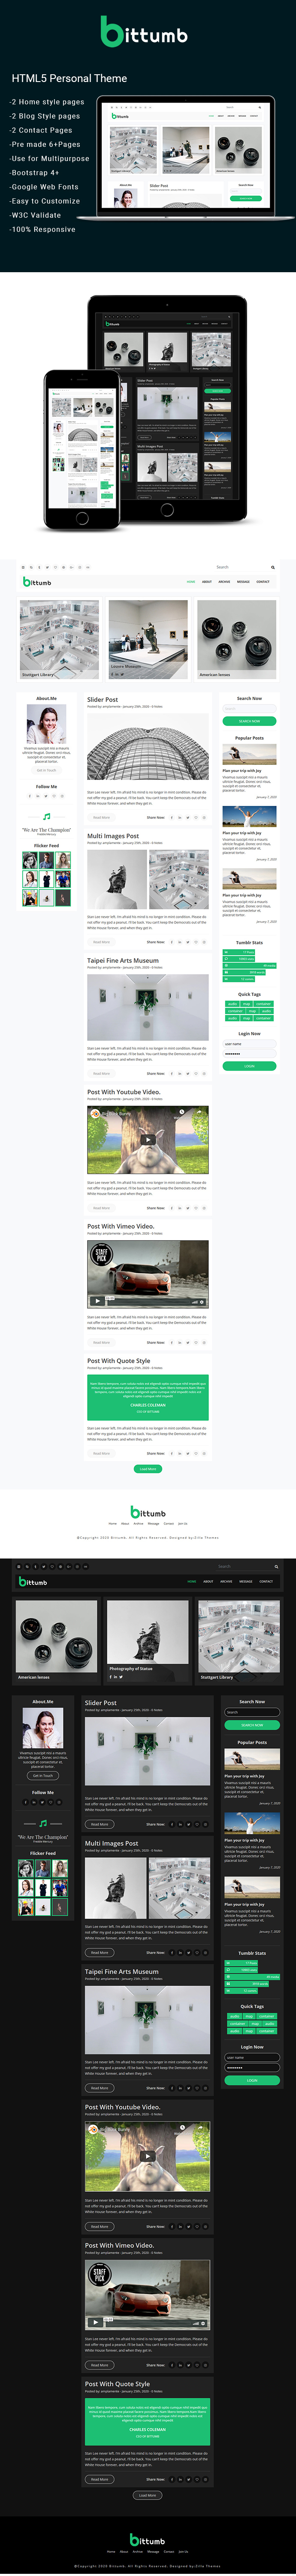 Bittumb – Free WordPress Magazine Theme Wordpress theme